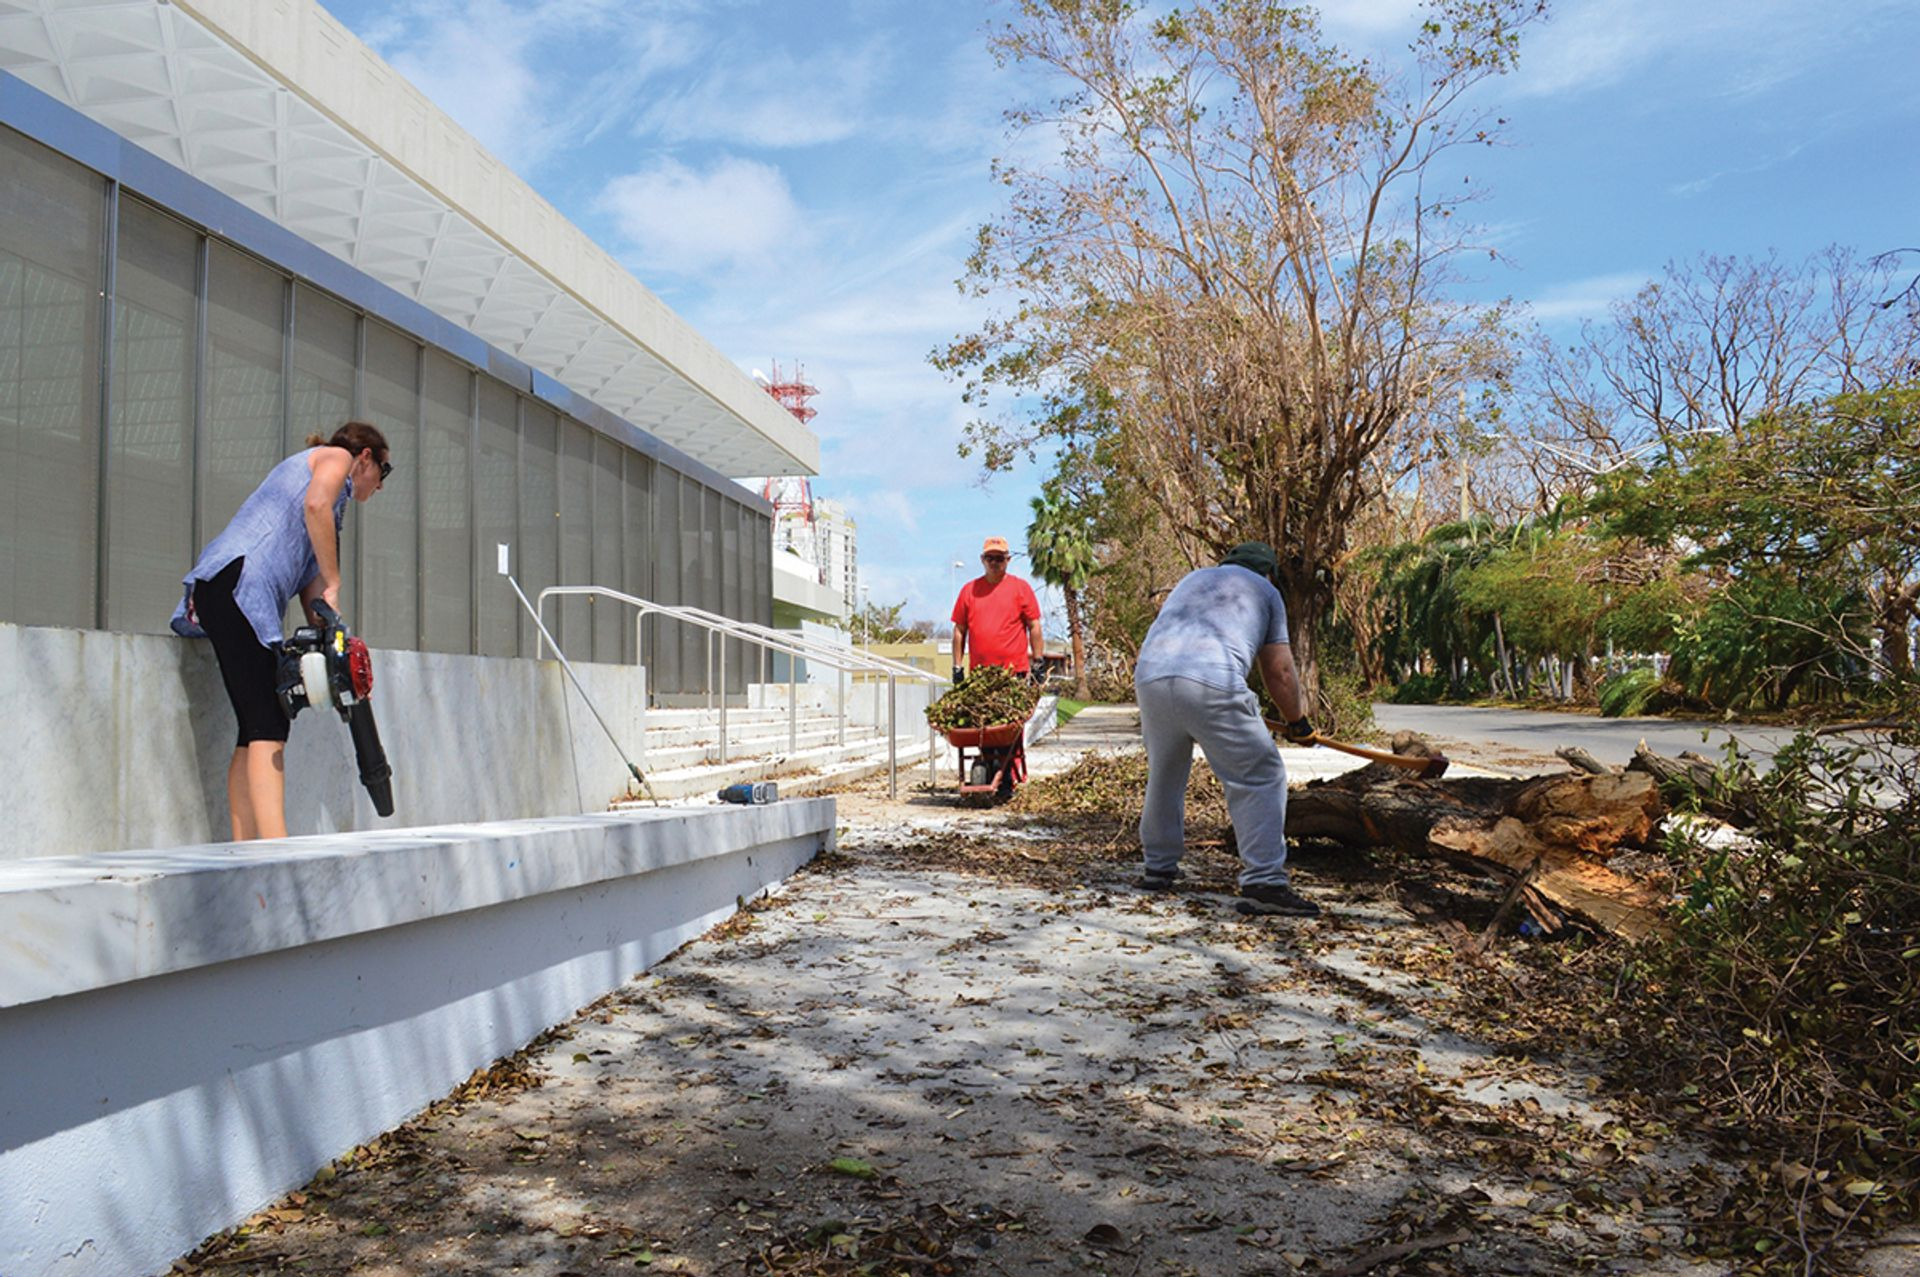 Workers clear up damage from Hurricane Maria at the Museo de Arte de Ponce Courtesy of the Museo de Arte de Ponce